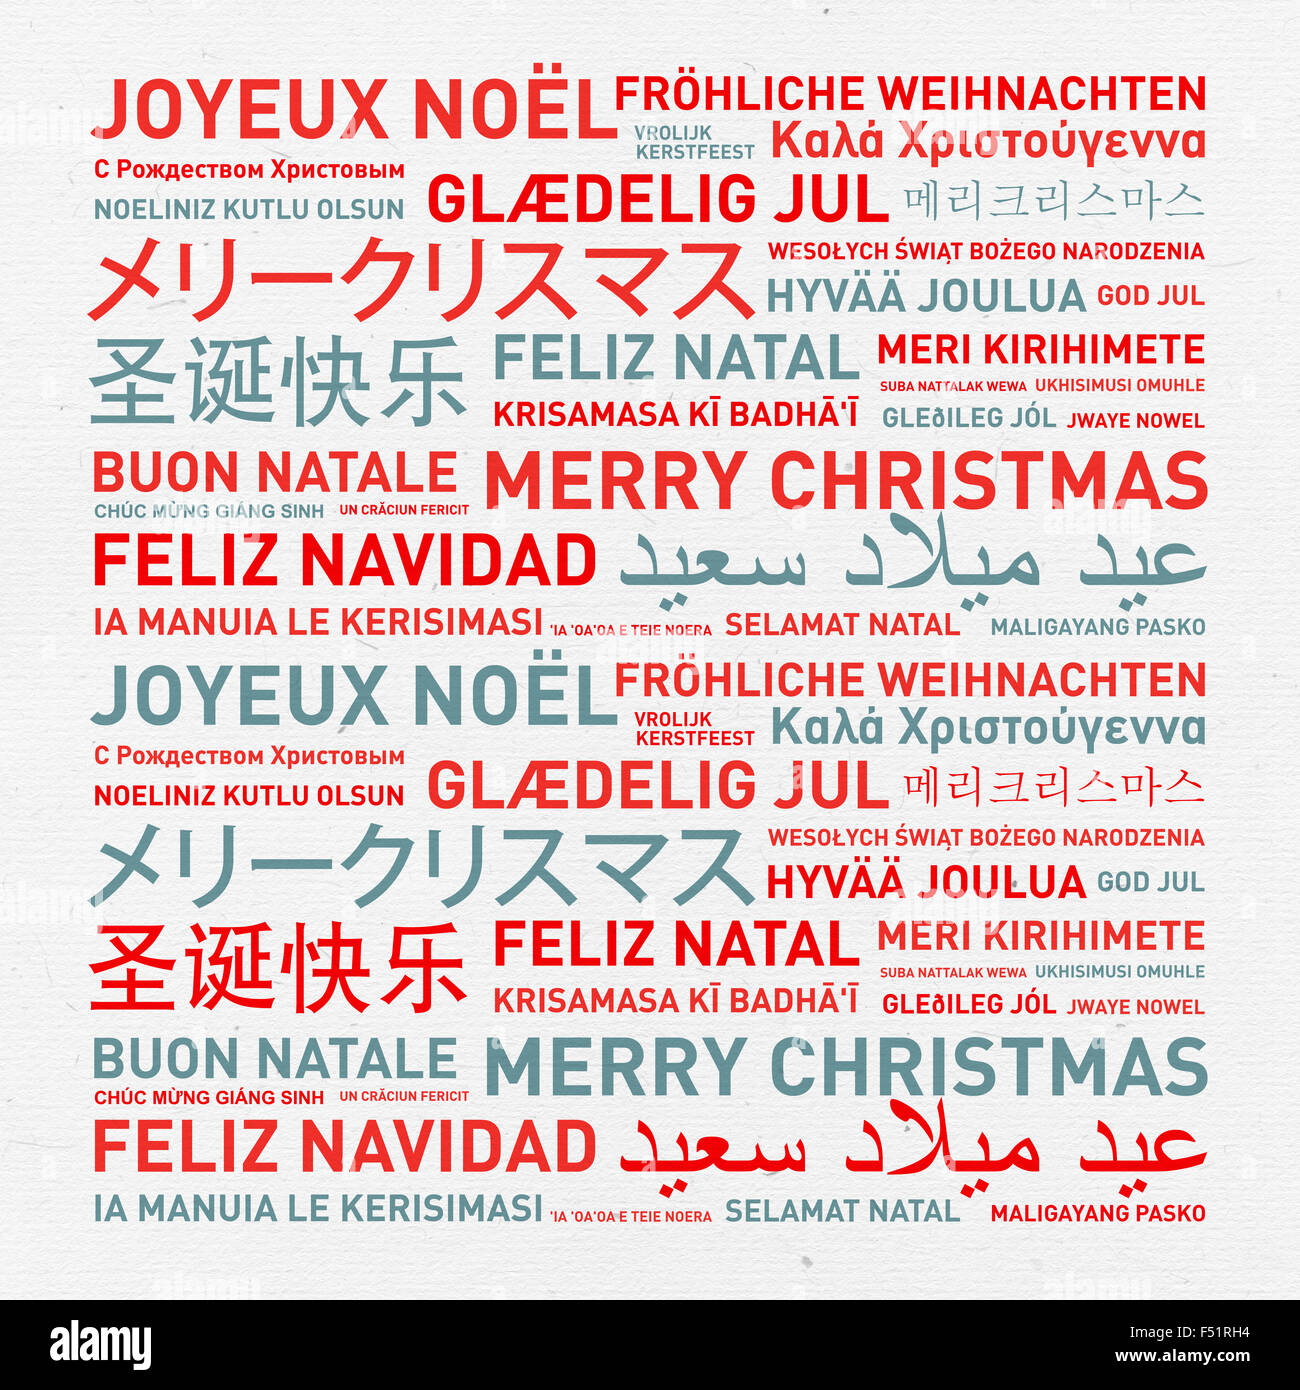 Merry Christmas In Different Languages.Merry Christmas Different Languages Stock Photos Merry